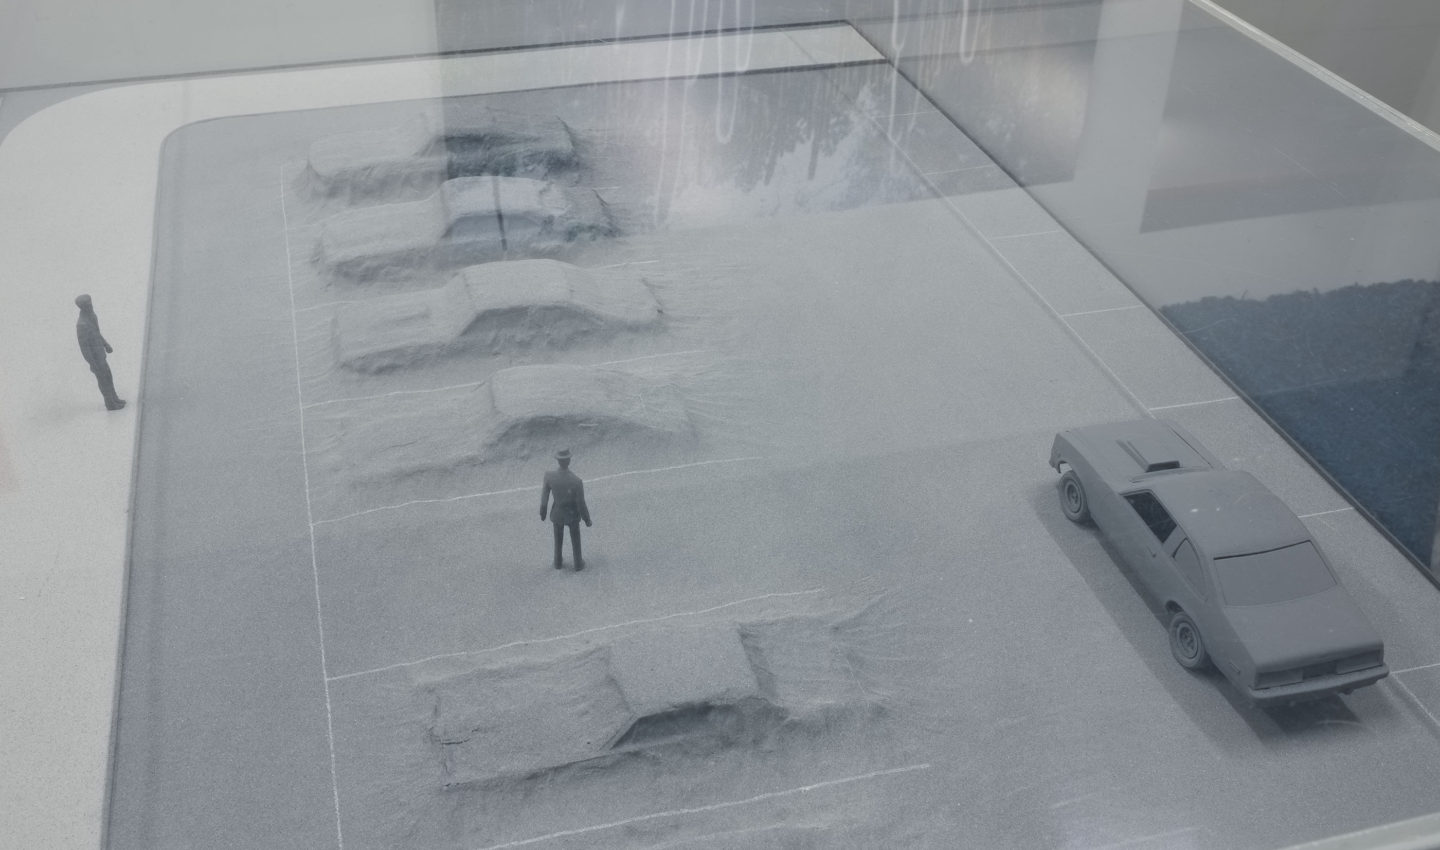 P!, The_Stand_DSF7892_Low_Res James Wines / SITE, Ghost Parking Lot model, 1977